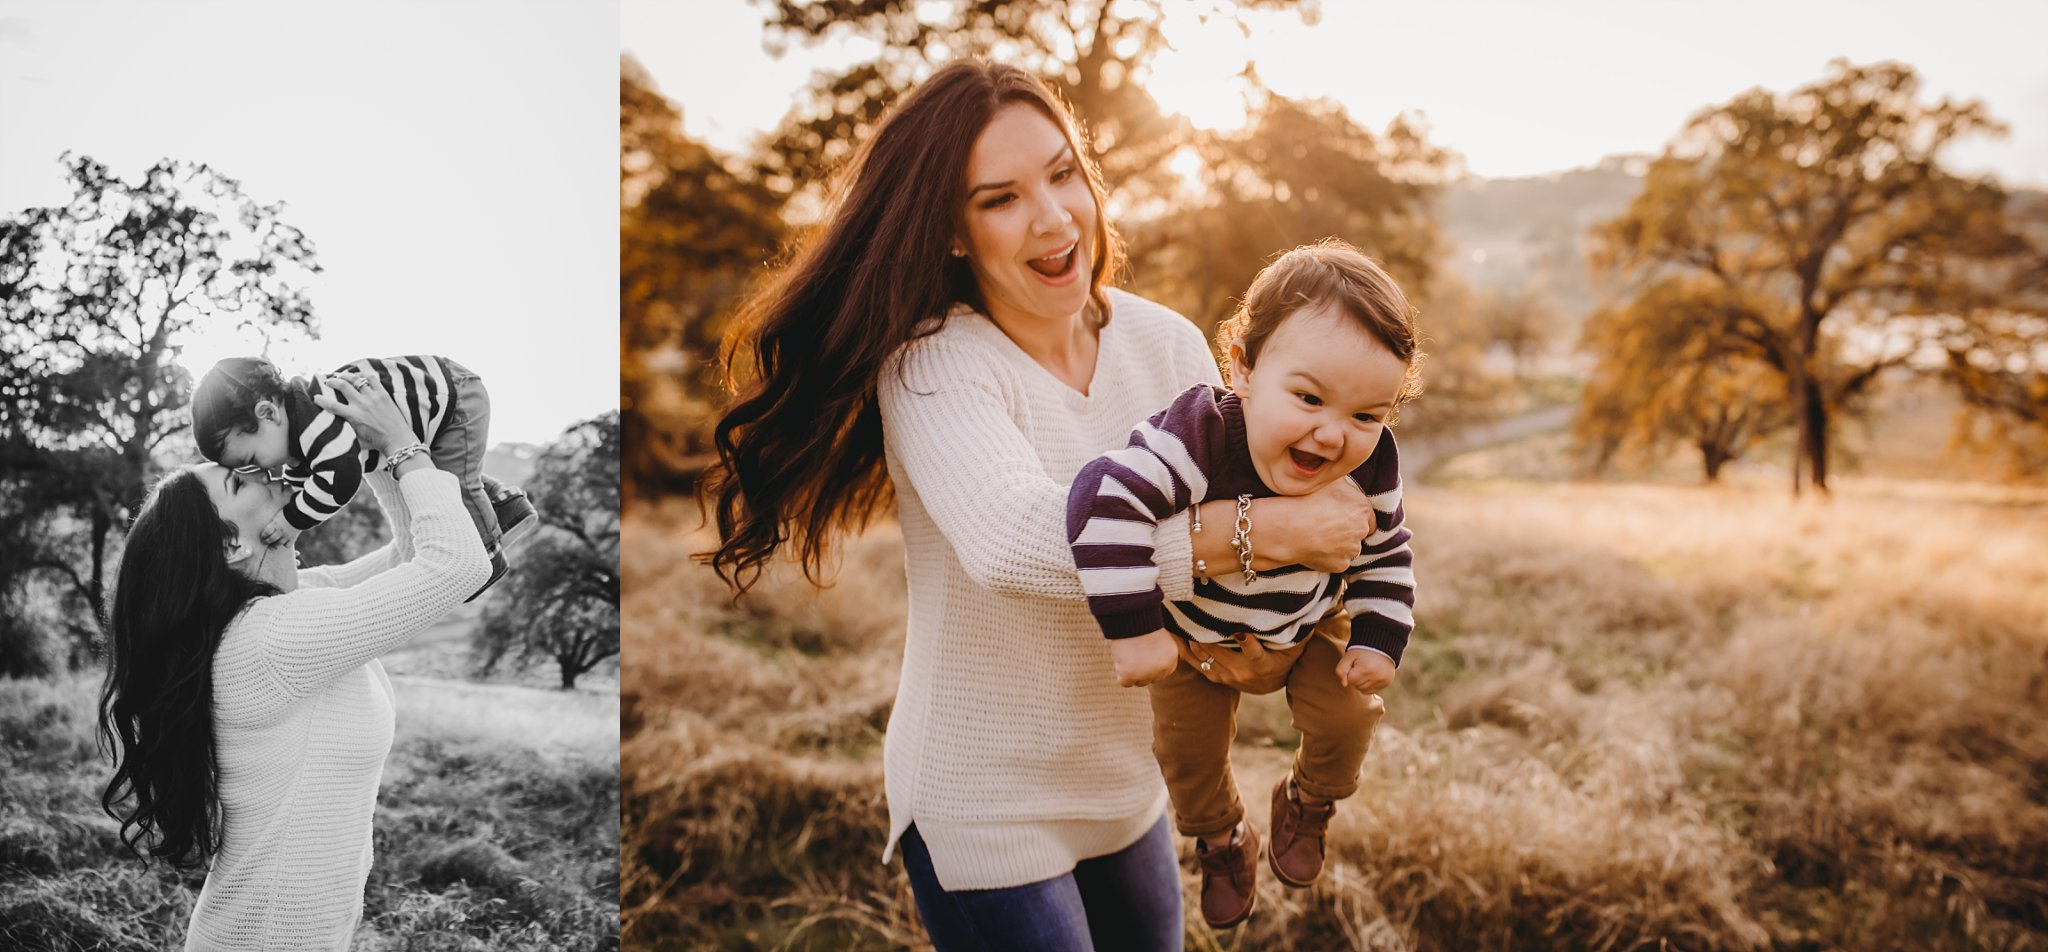 Mom and son playing, sun, family, Becci Ravera Photography